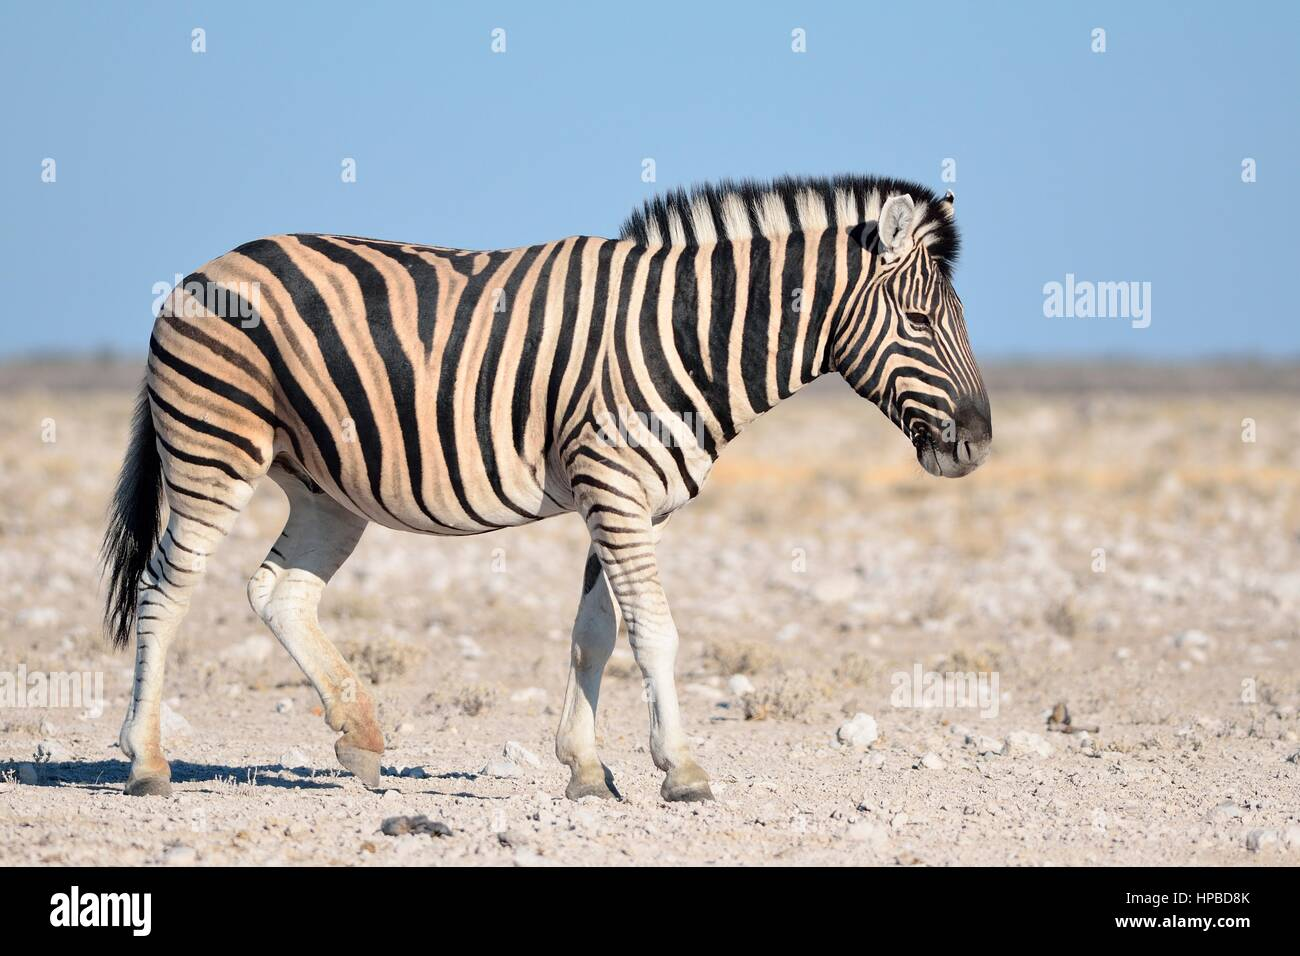 Burchell's zebra (Equus quagga burchellii), walking on stony ground, Etosha National Park, Namibia, Africa - Stock Image